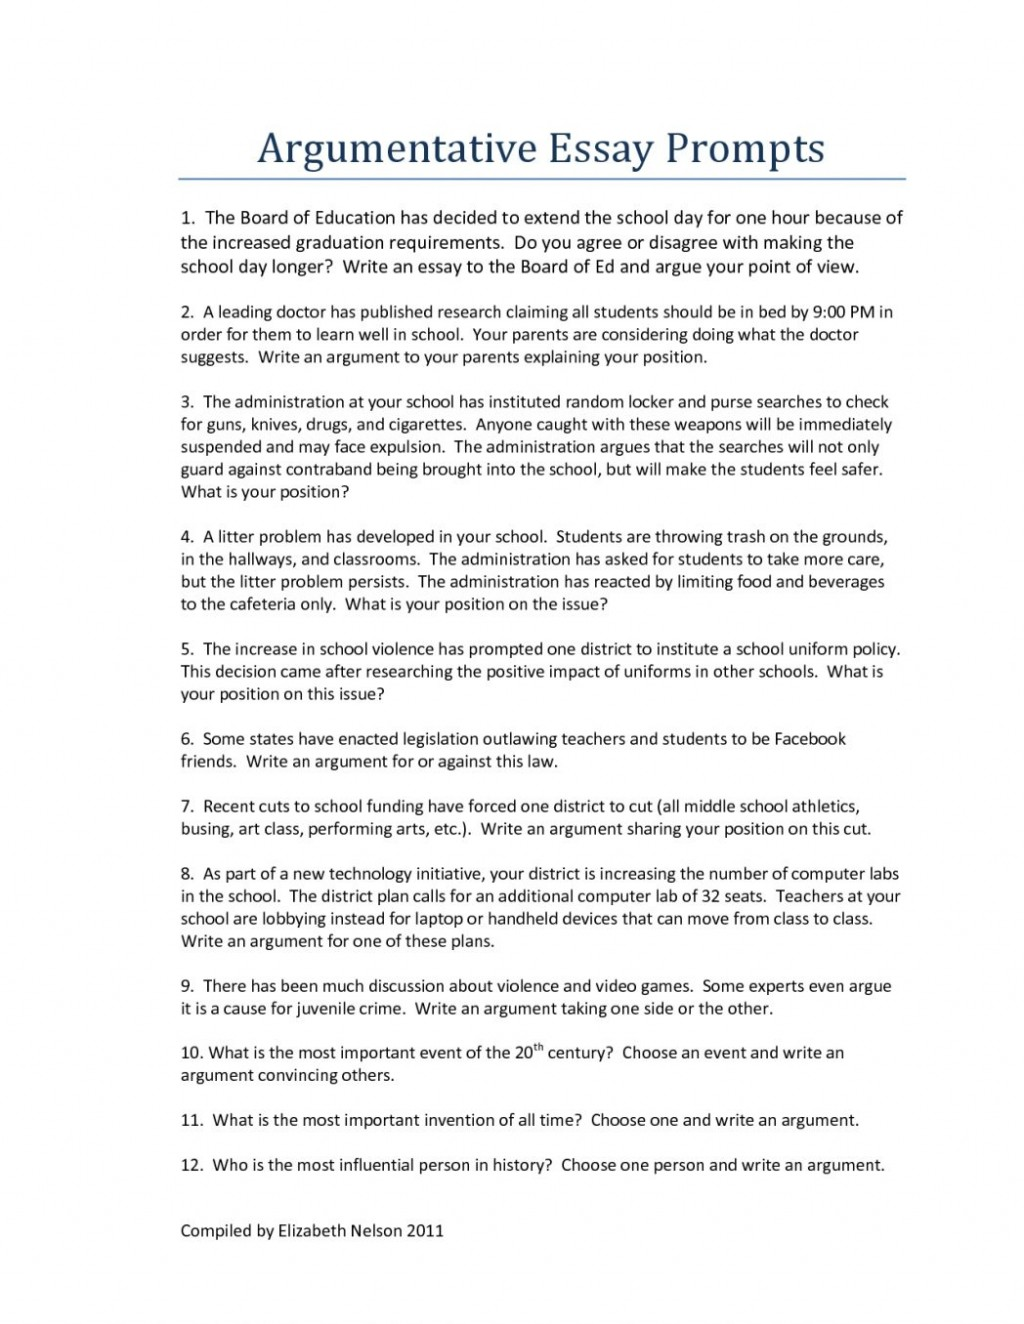 007 Essay Exampleumentative Topics For Middle School Writings And Essays Interesting To Write An On Good Persuasive Highume How Topic Sentence Easy Best Fun 1048x1356 Striking Argumentative What Is A Prompts Large